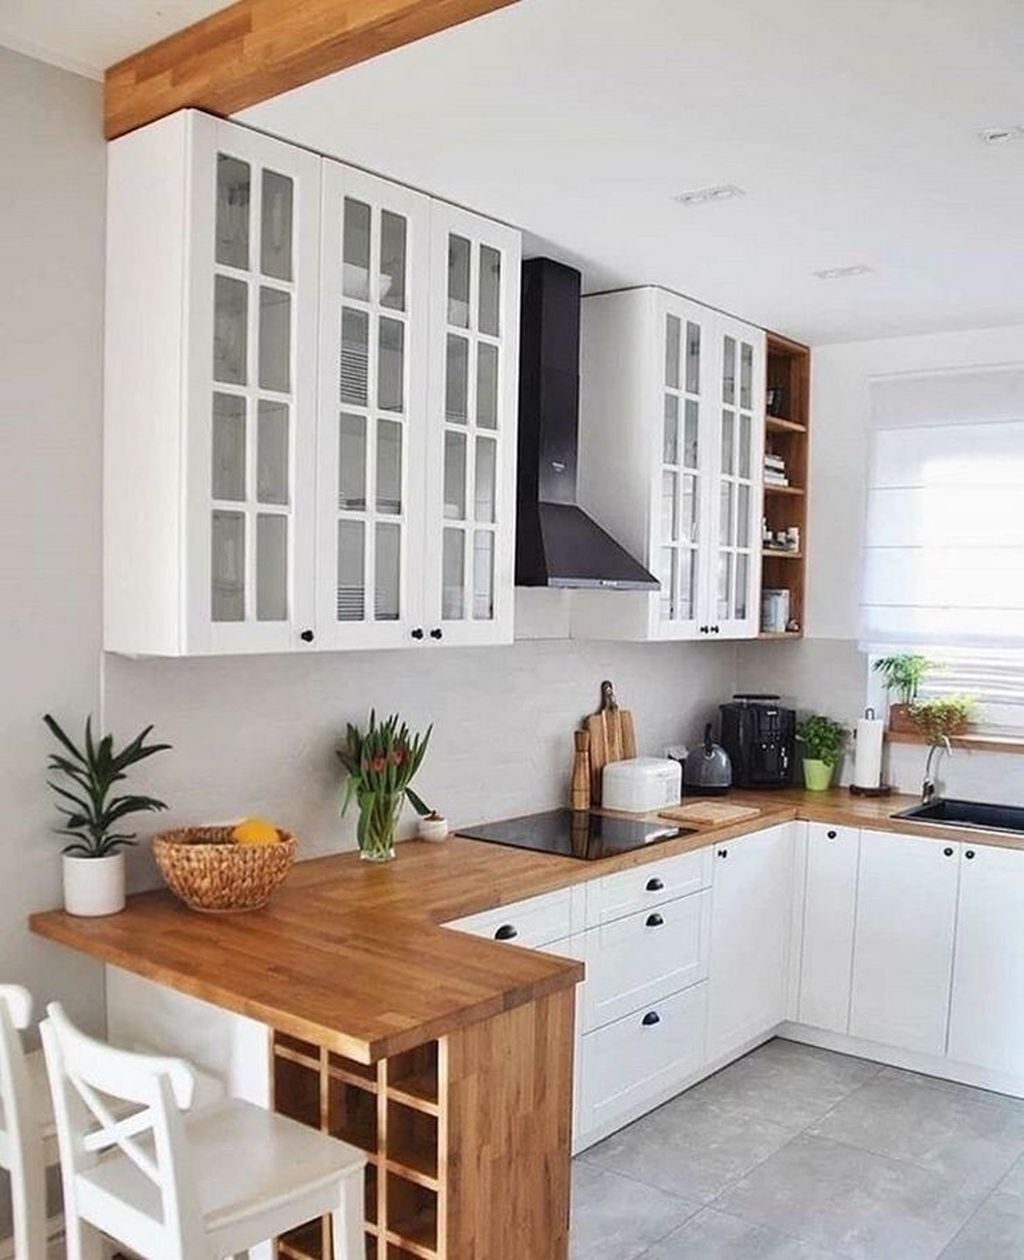 Excellent Small Kitchen Decor Ideas On A Budget 31